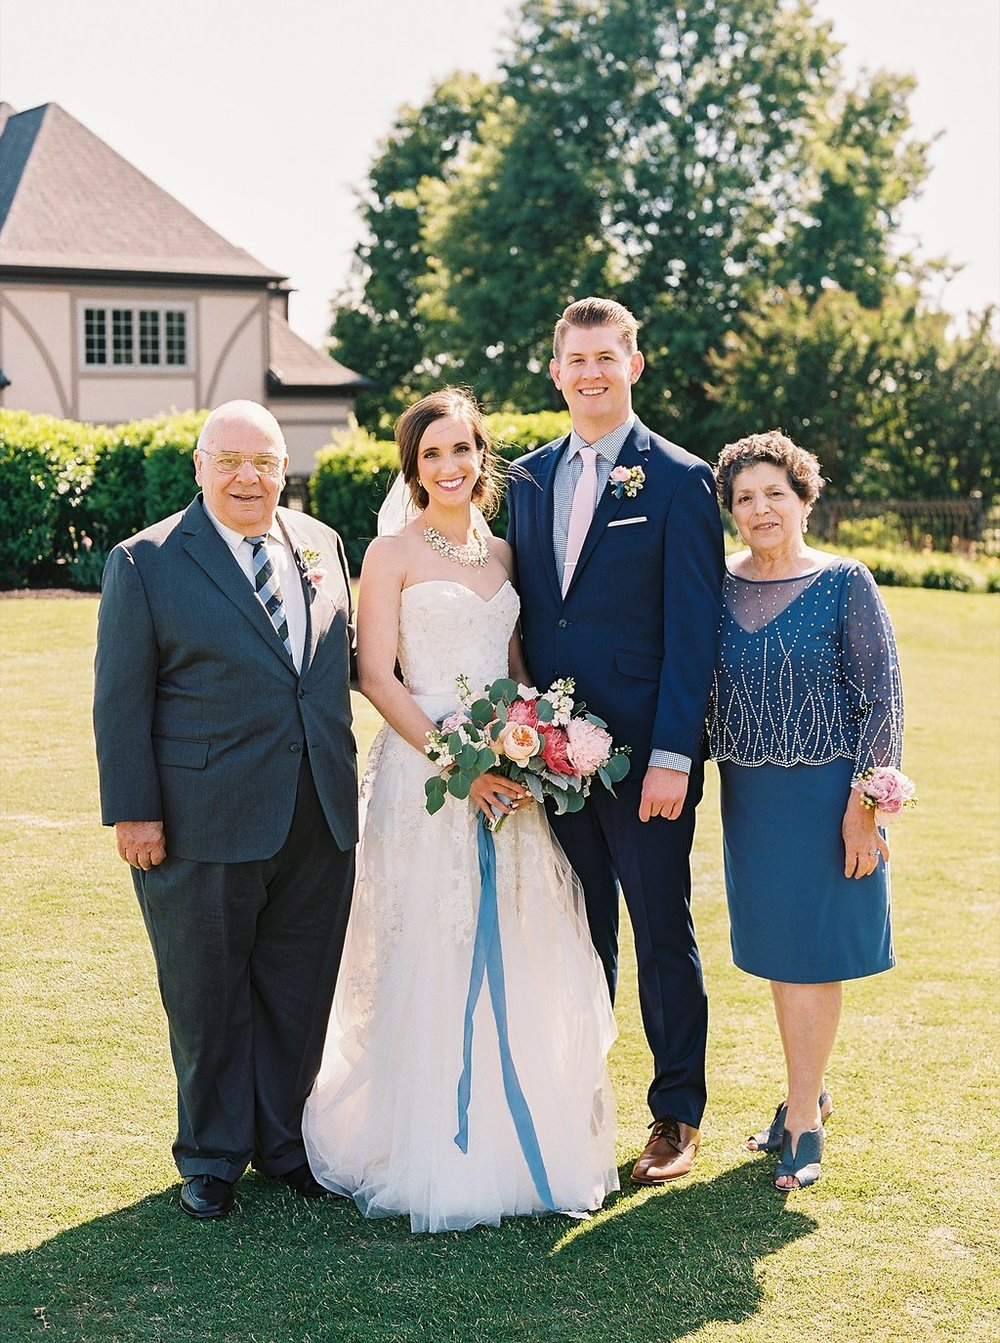 Bride Grandparents Family Portrait | Blush and Navy Wedding with Fuchsia, French Blue and Gold Accents | Simply Jessica Marie's Southern Wedding | Photo by Perry Vaile Photography